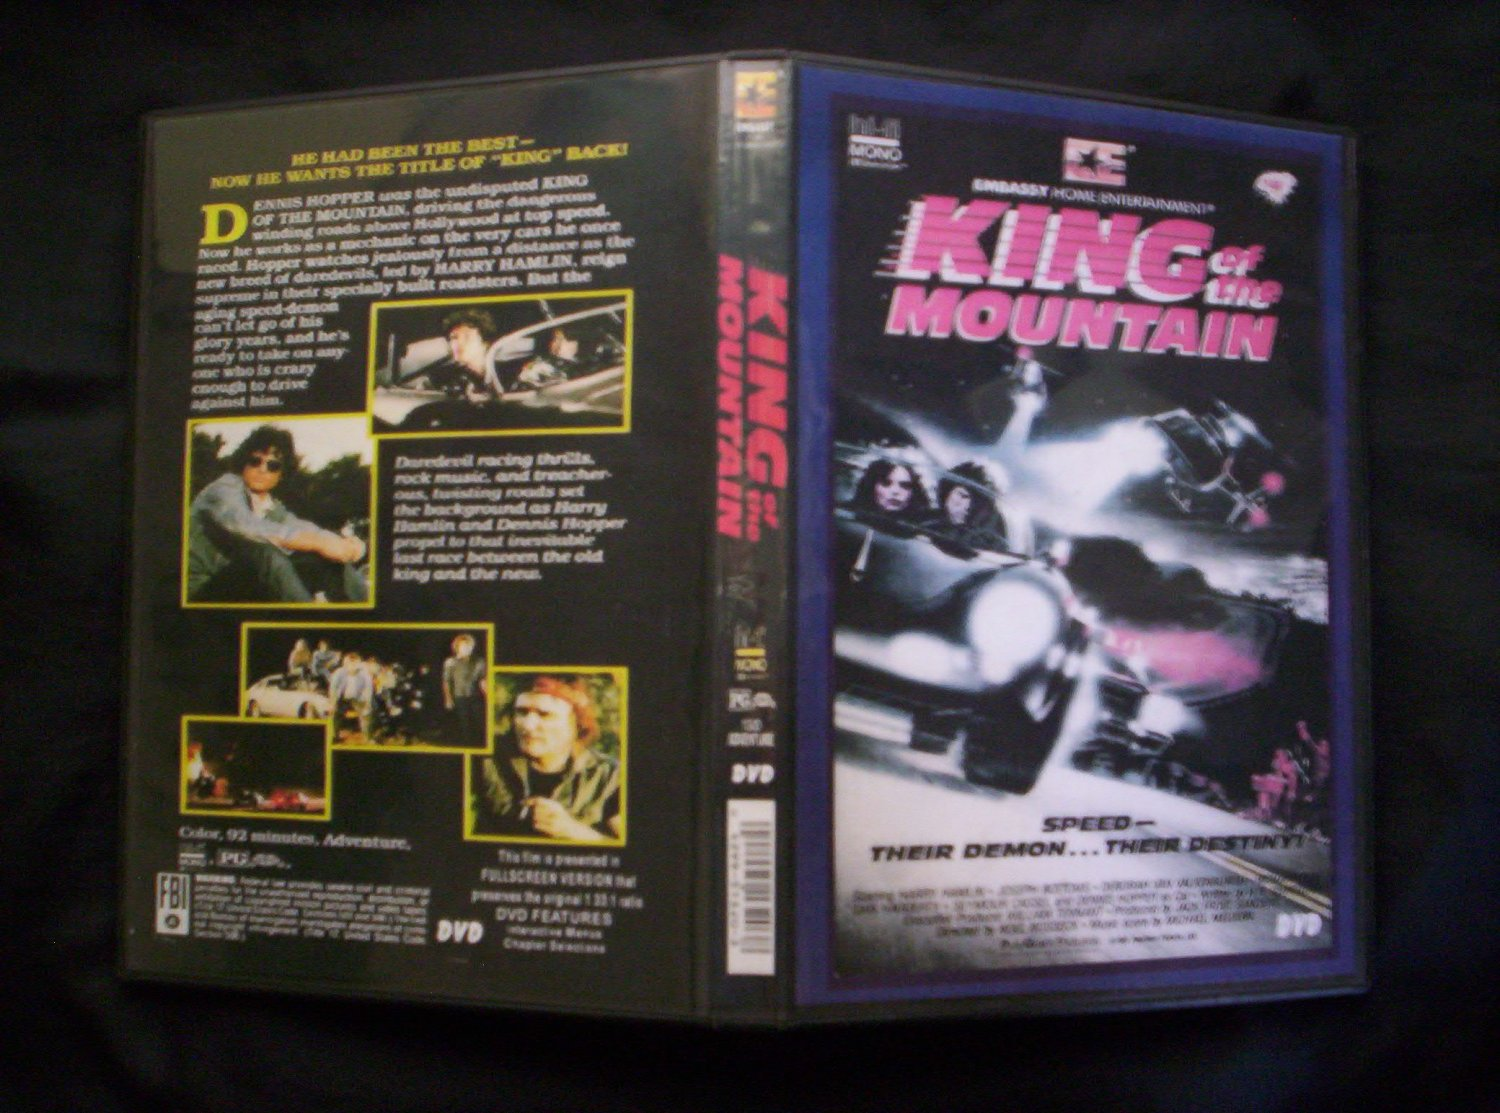 King of the Mountain DVD 1981